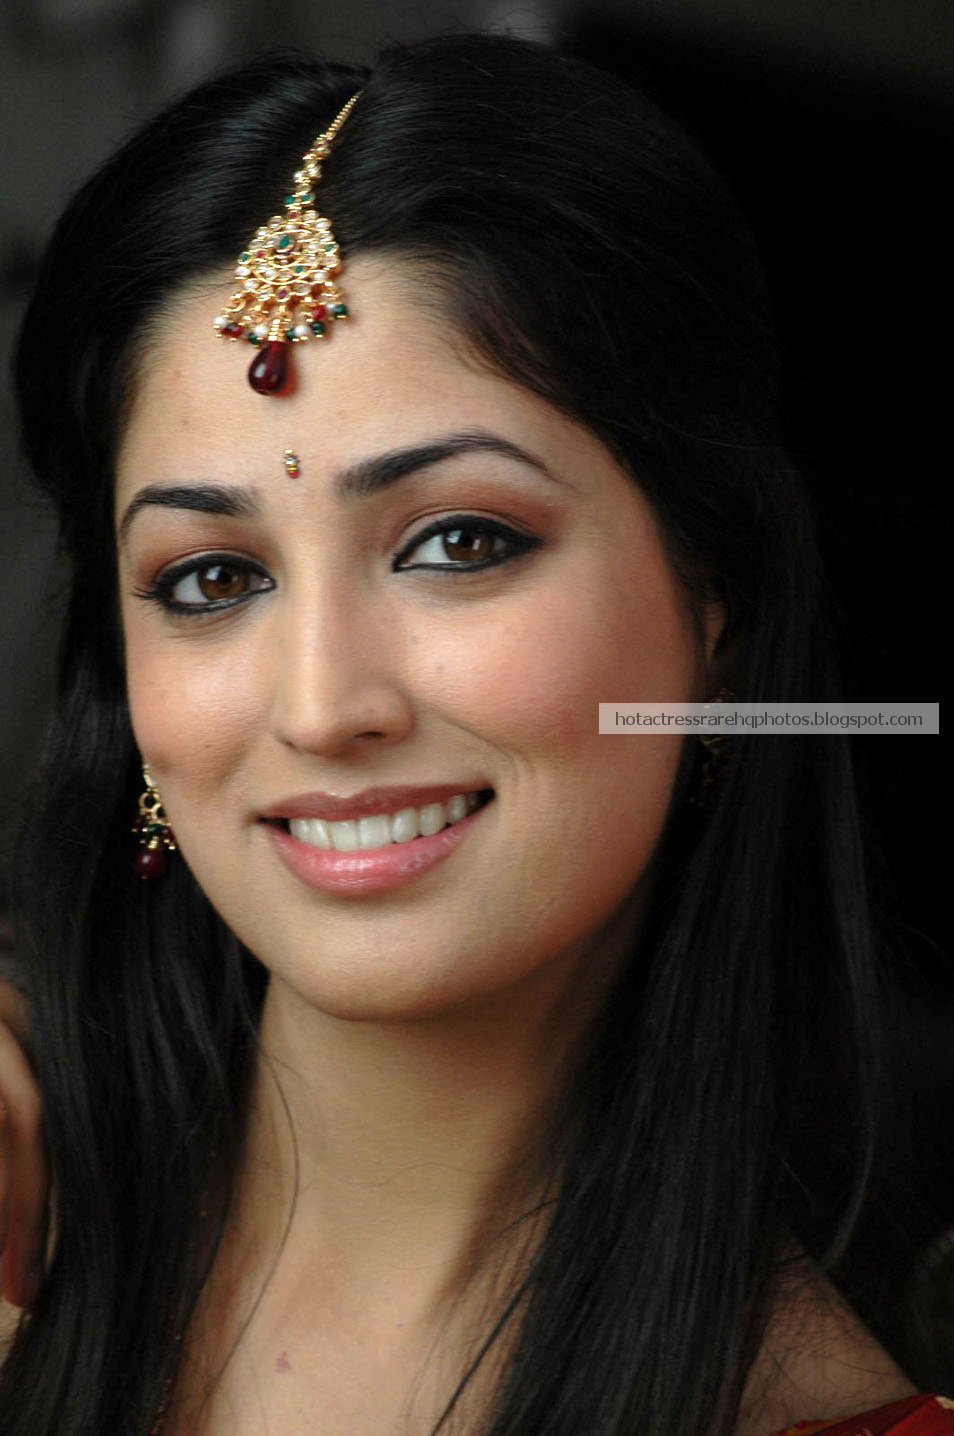 Hot Indian Actress Rare HQ Photos: Actress Yami Gautam Unseen ...